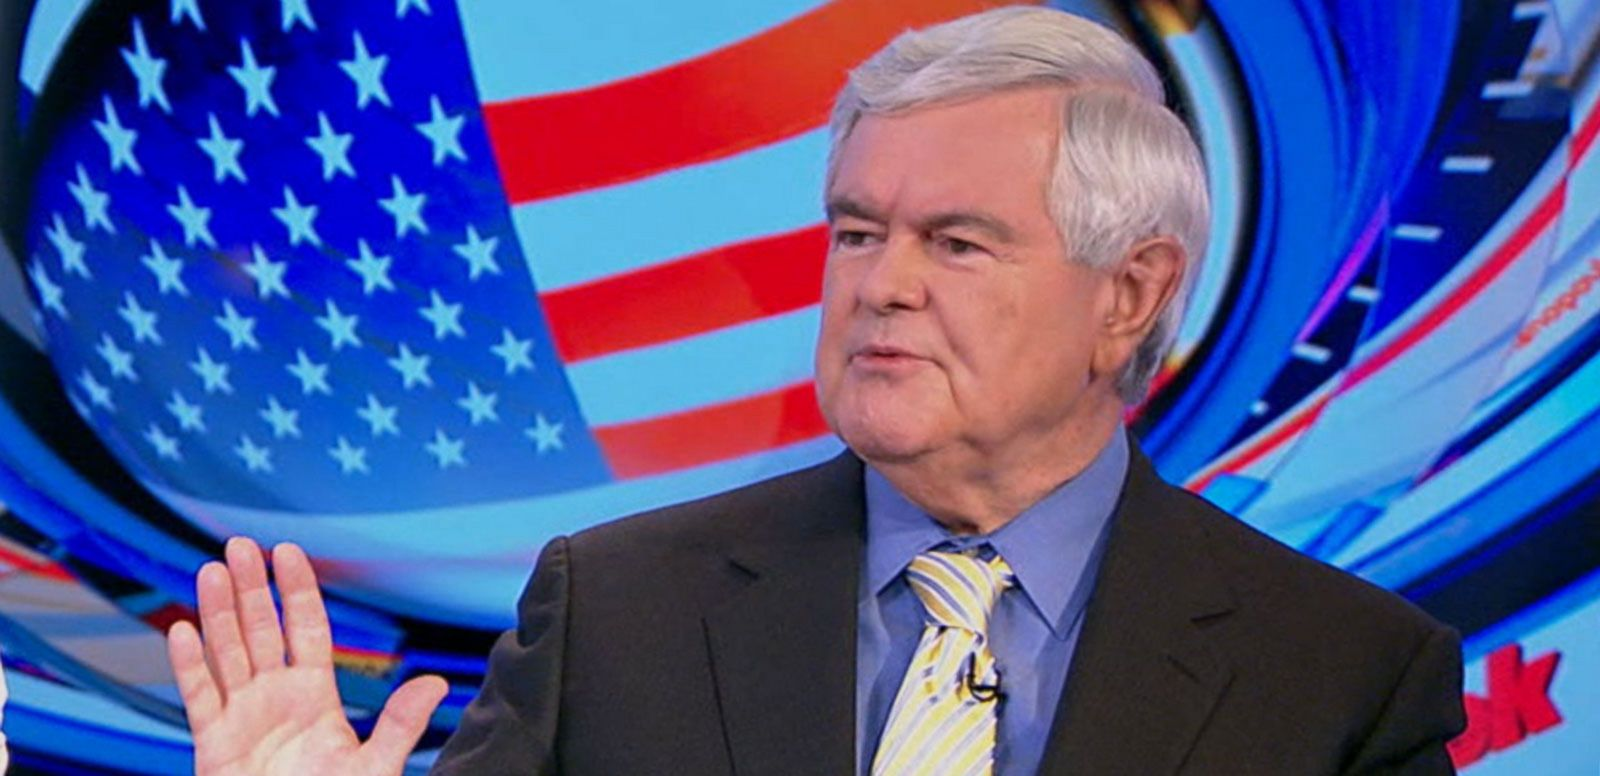 VIDEO: Newt Gingrich: Trump Could 'Absolutely' Be the Republican Nominee